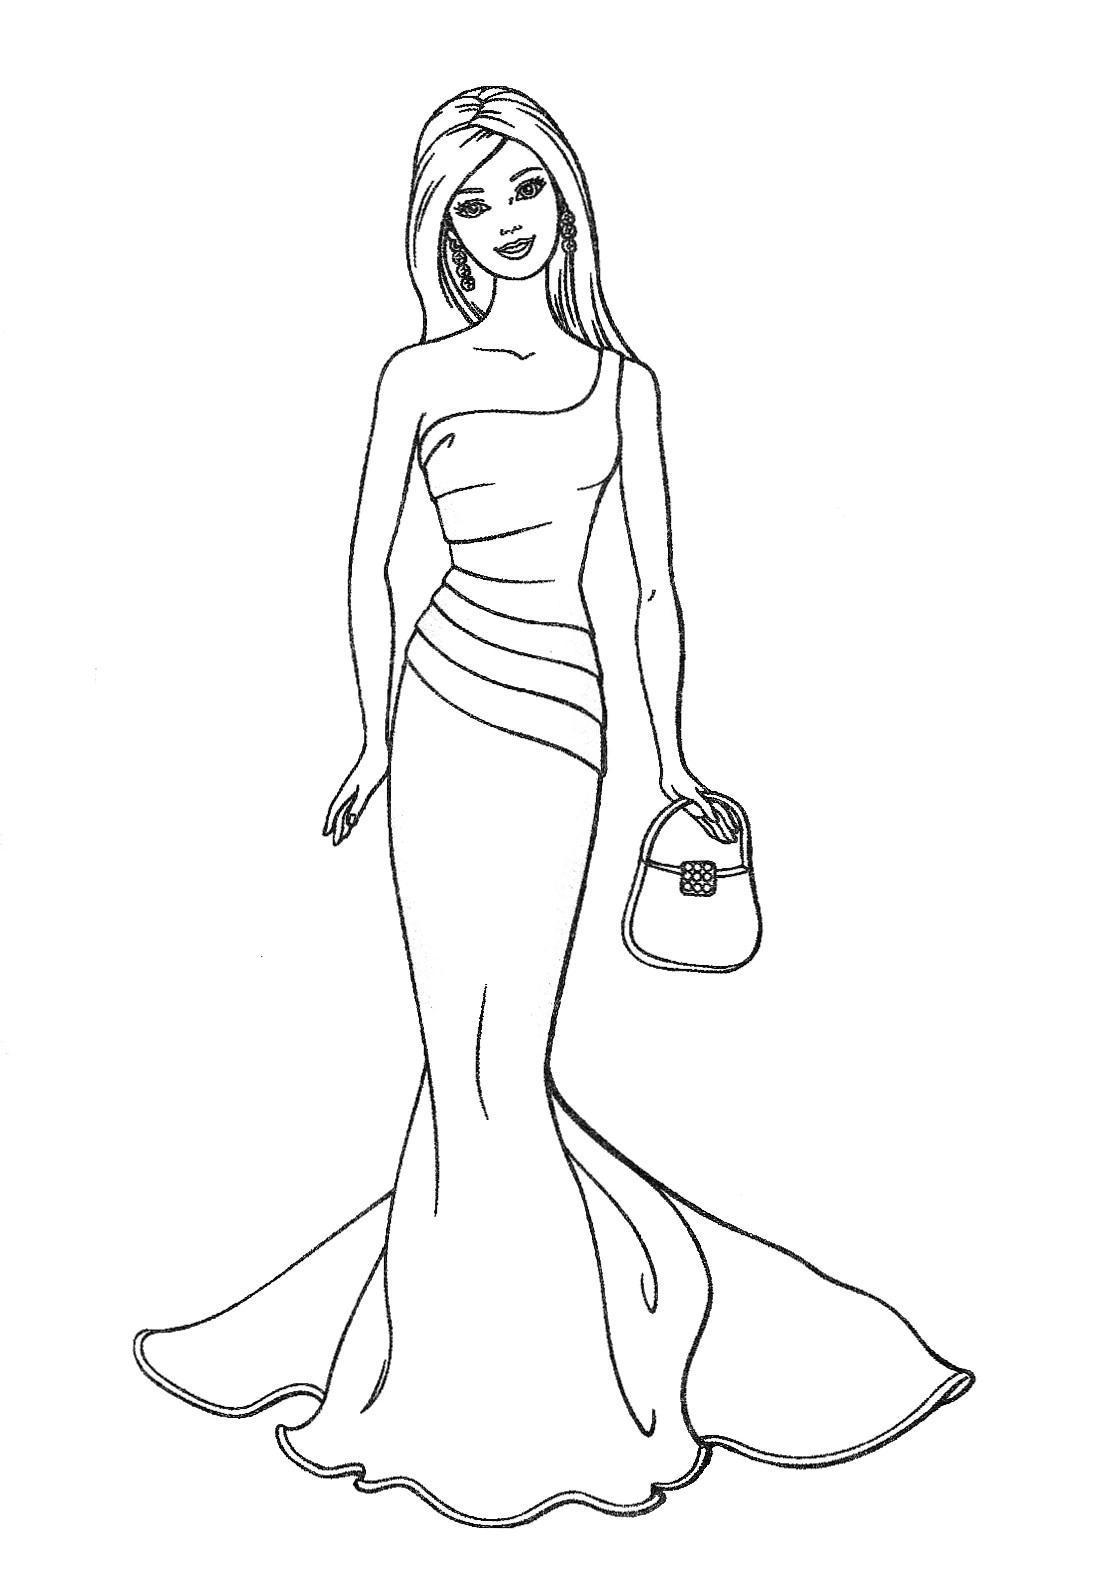 Coloriage De Barbie à Imprimer Coloriages Barbie